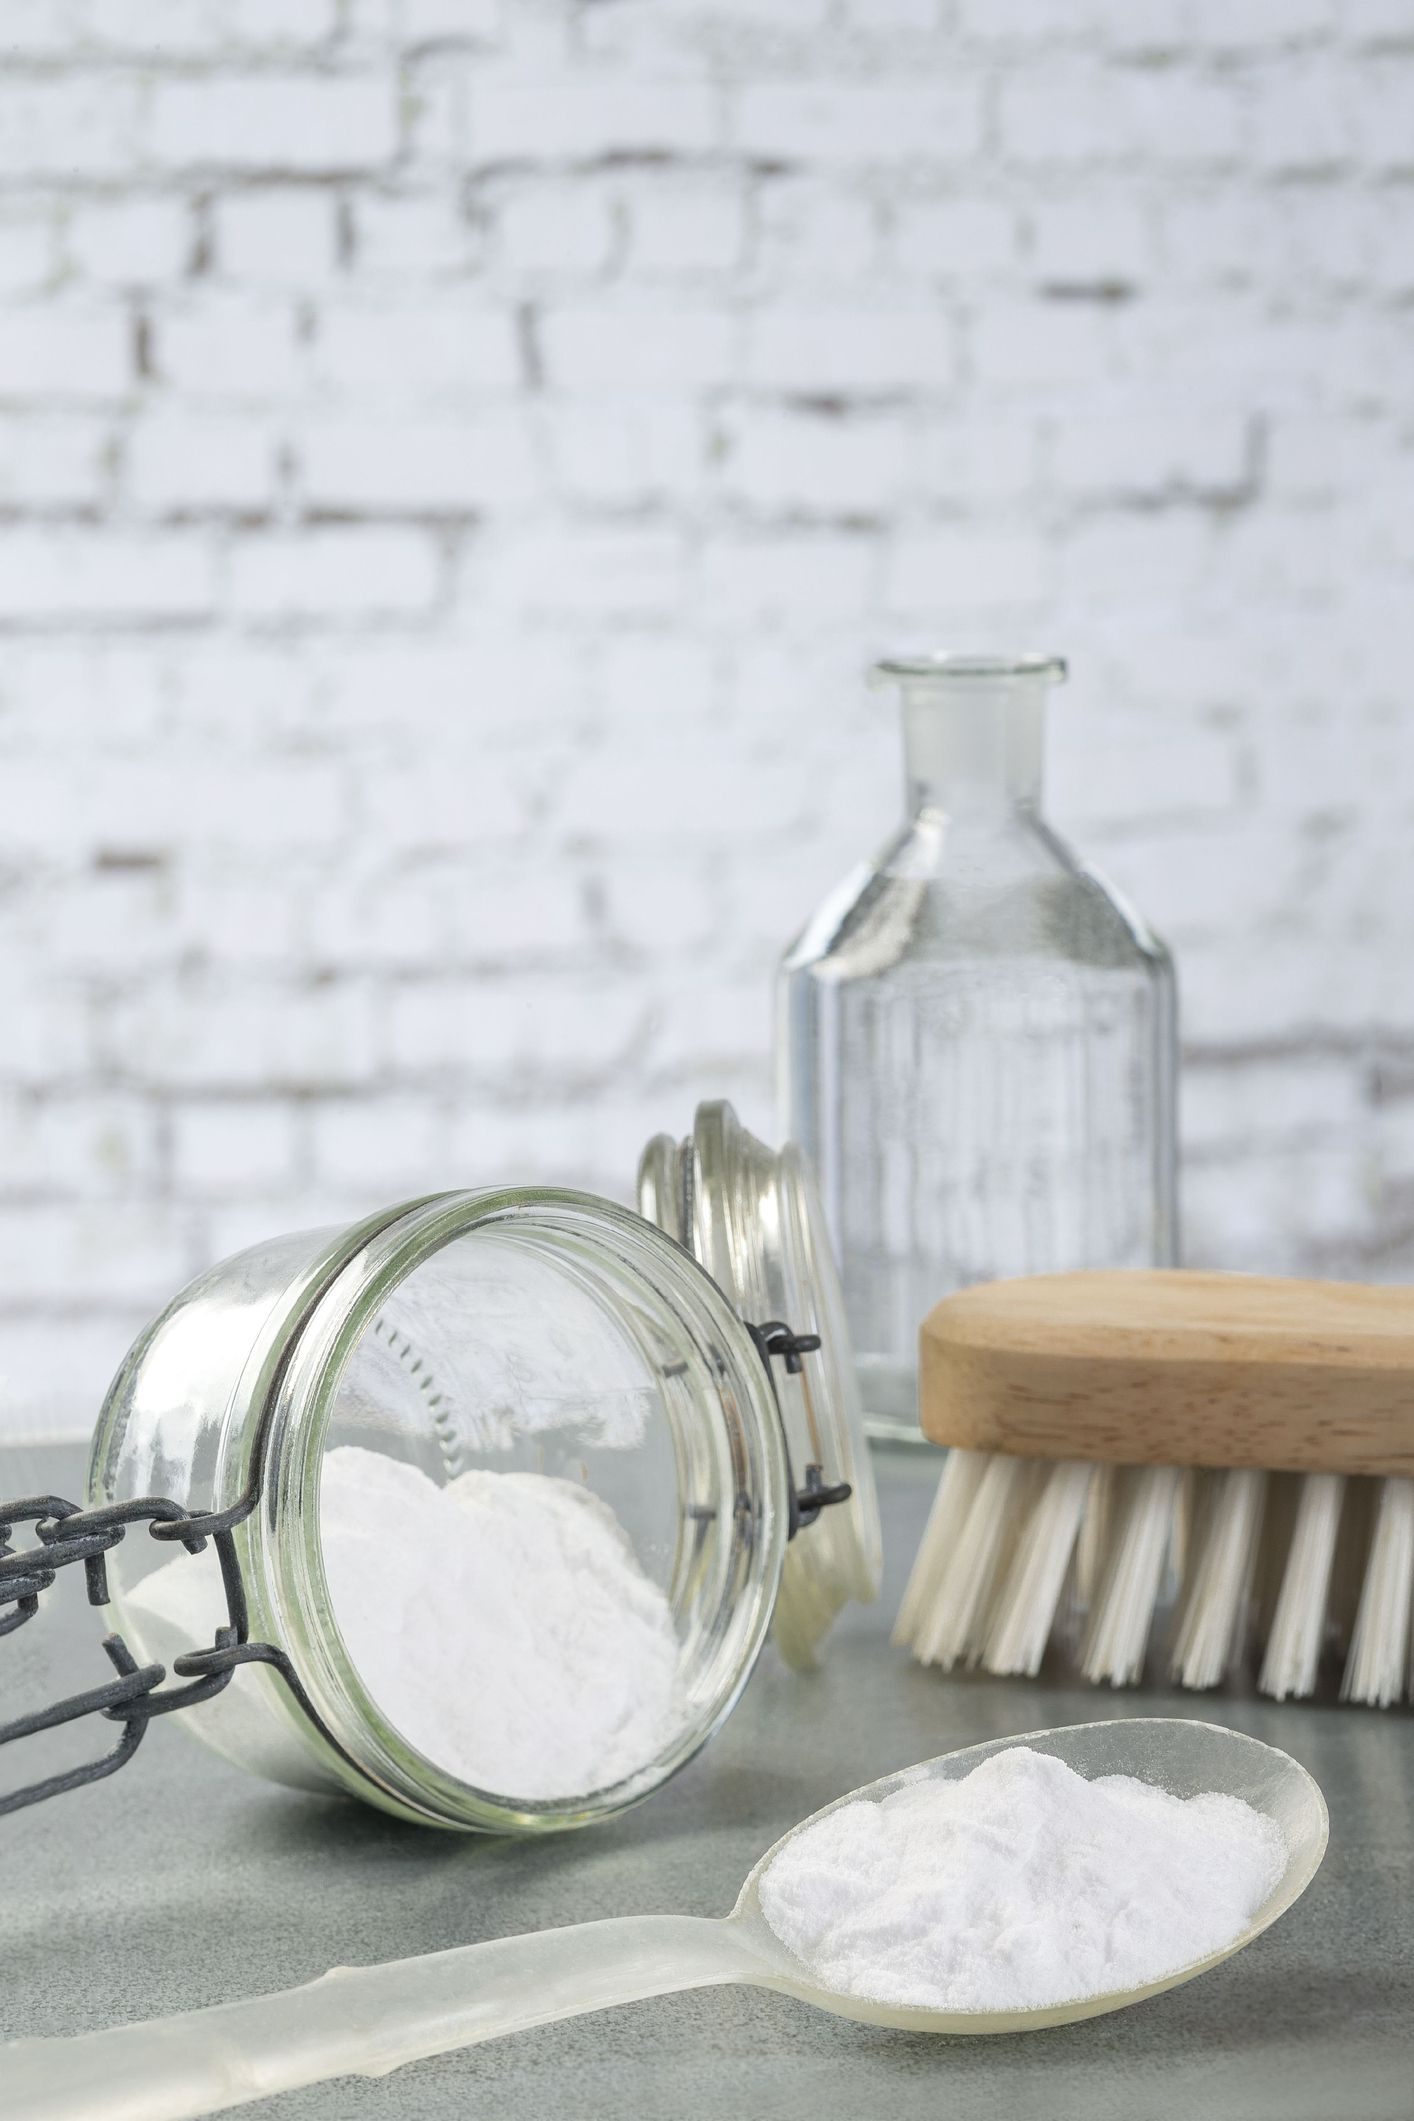 Places To Use Baking Soda In The Home